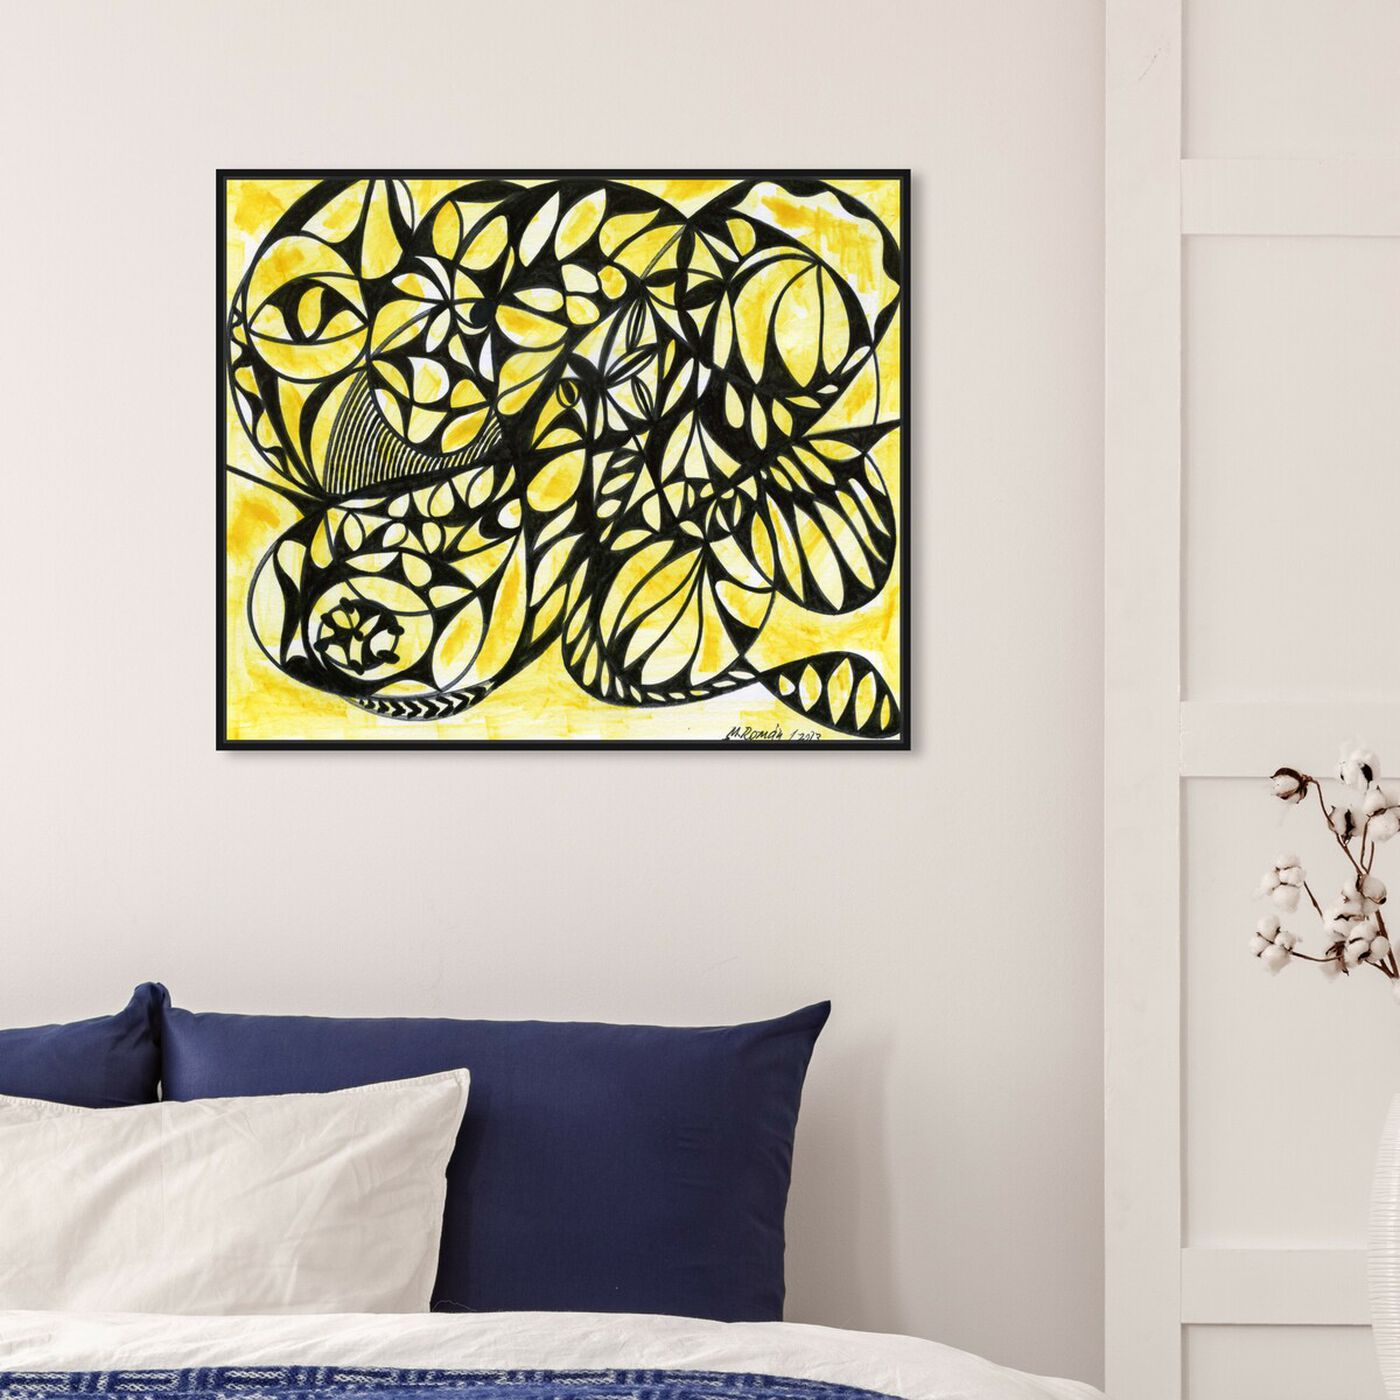 Hanging view of Honeycombs featuring abstract and shapes art.